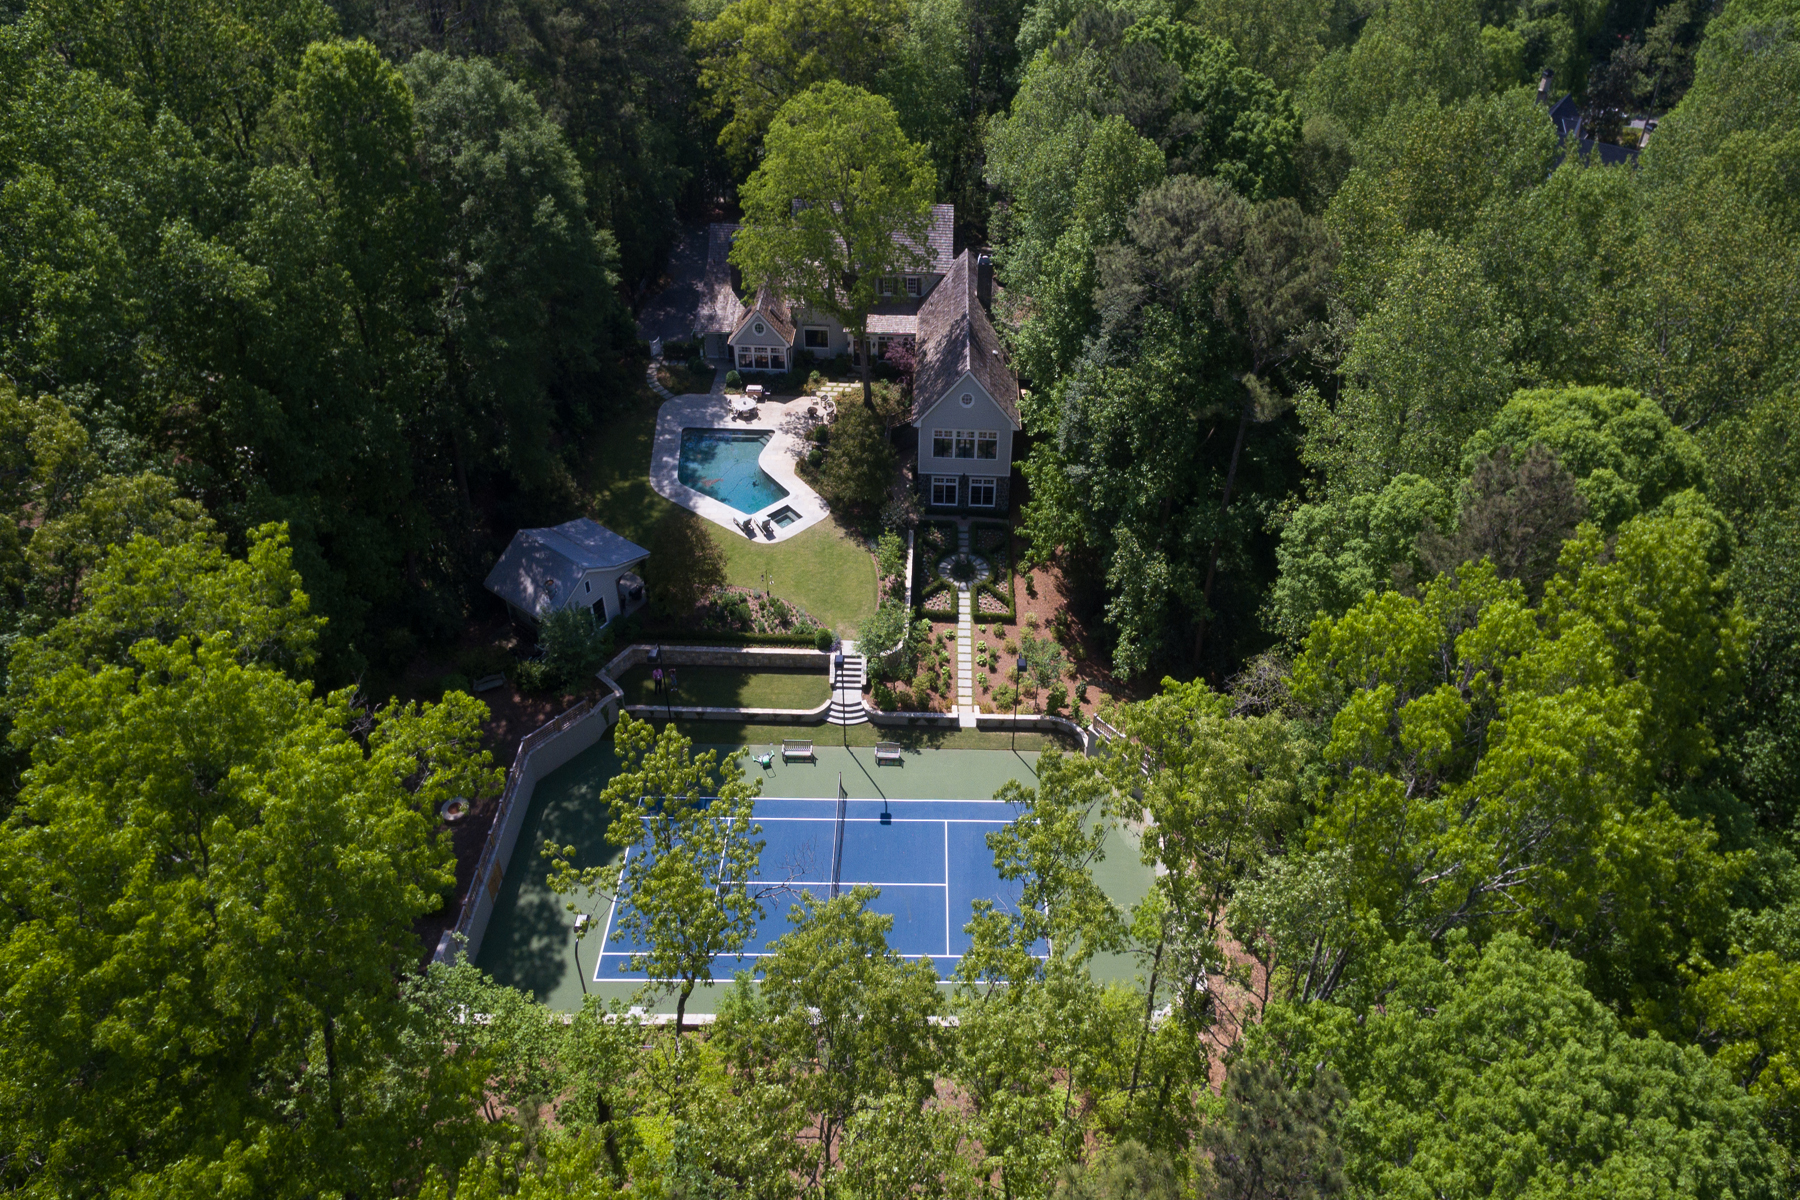 Single Family Home for Active at Amazing 4.86 Acre Estate Property With Lighted Tennis Court And Pool 4000 Conway Valley Road NW Atlanta, Georgia 30327 United States